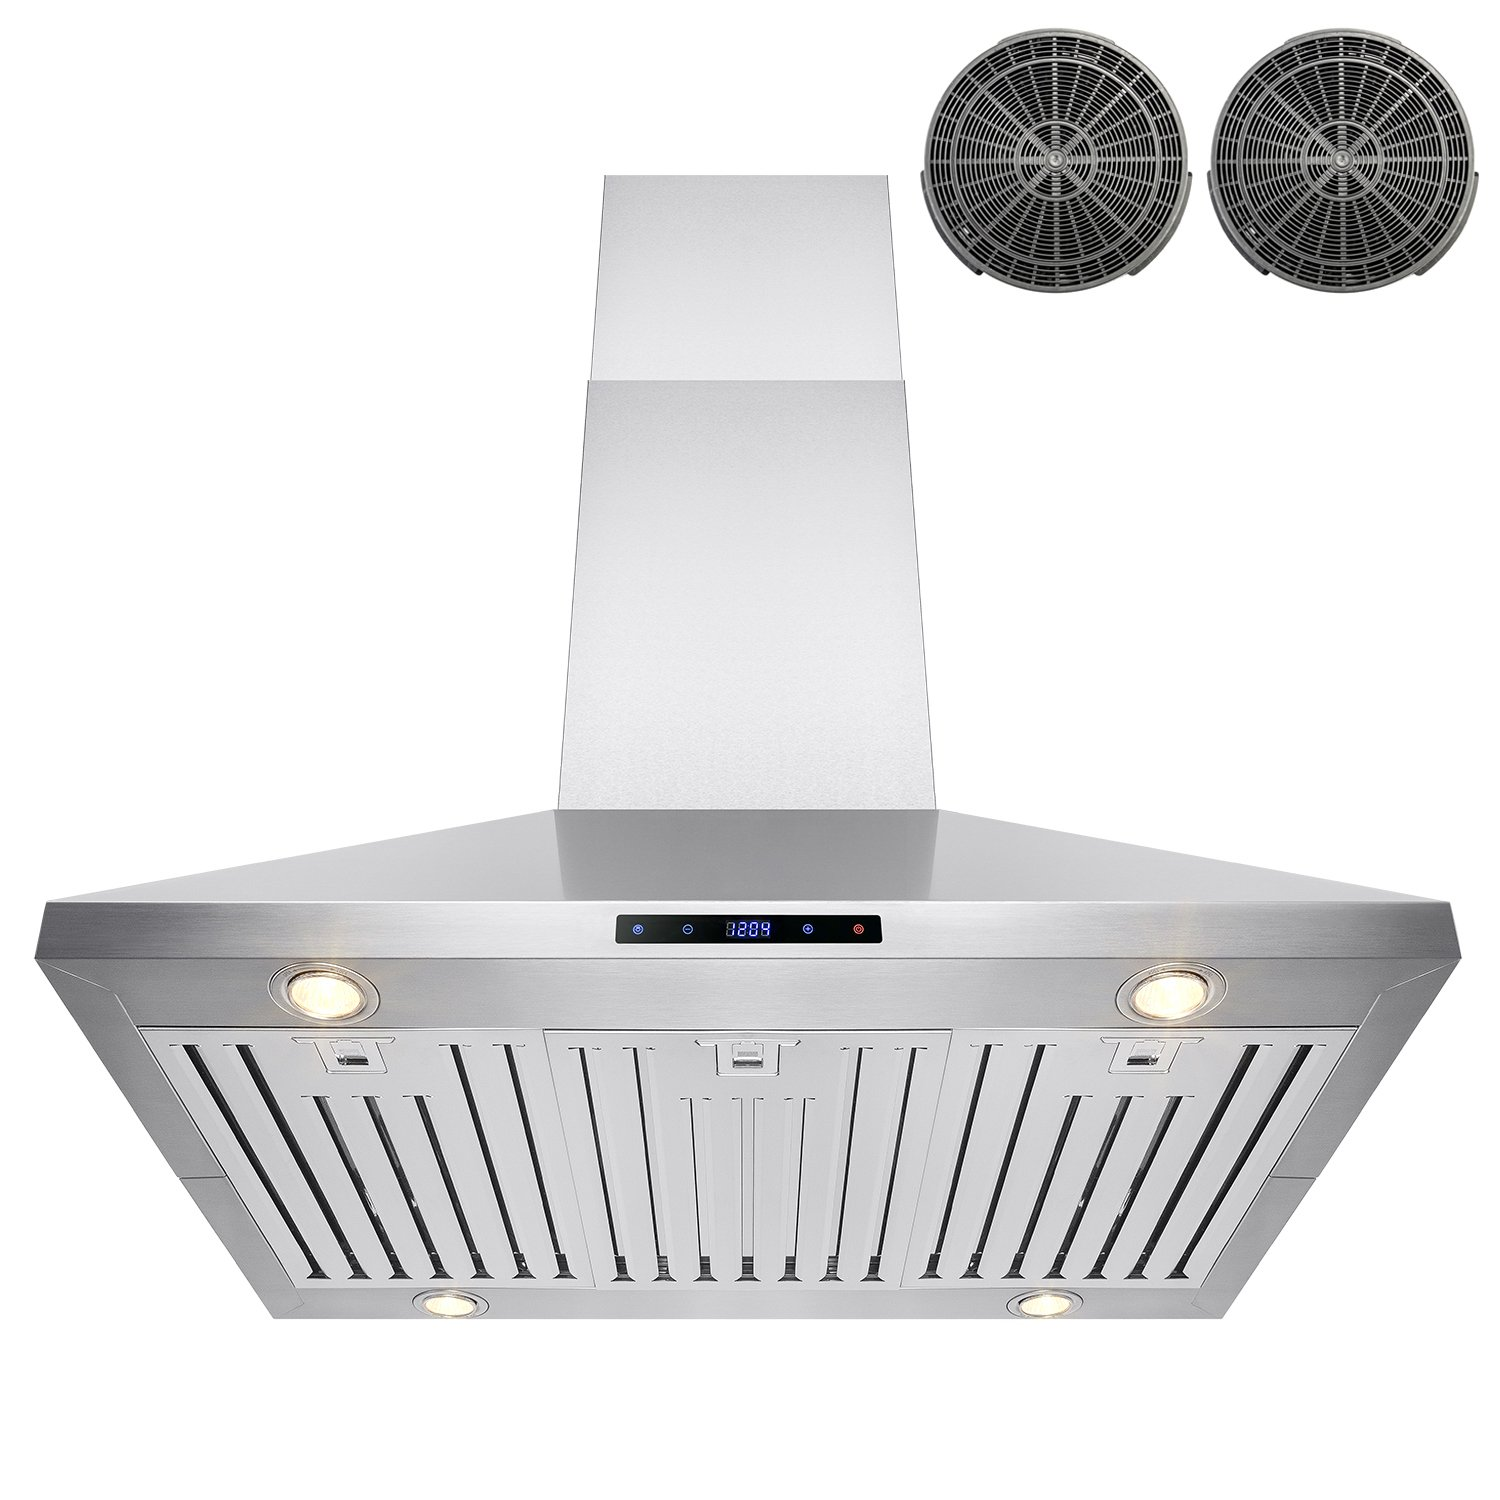 "FIREBIRD 36"" Stainless Steel Island Mount Powerful 870CFM Cooking Fan Kitchen Vent Ductless Range Hood"